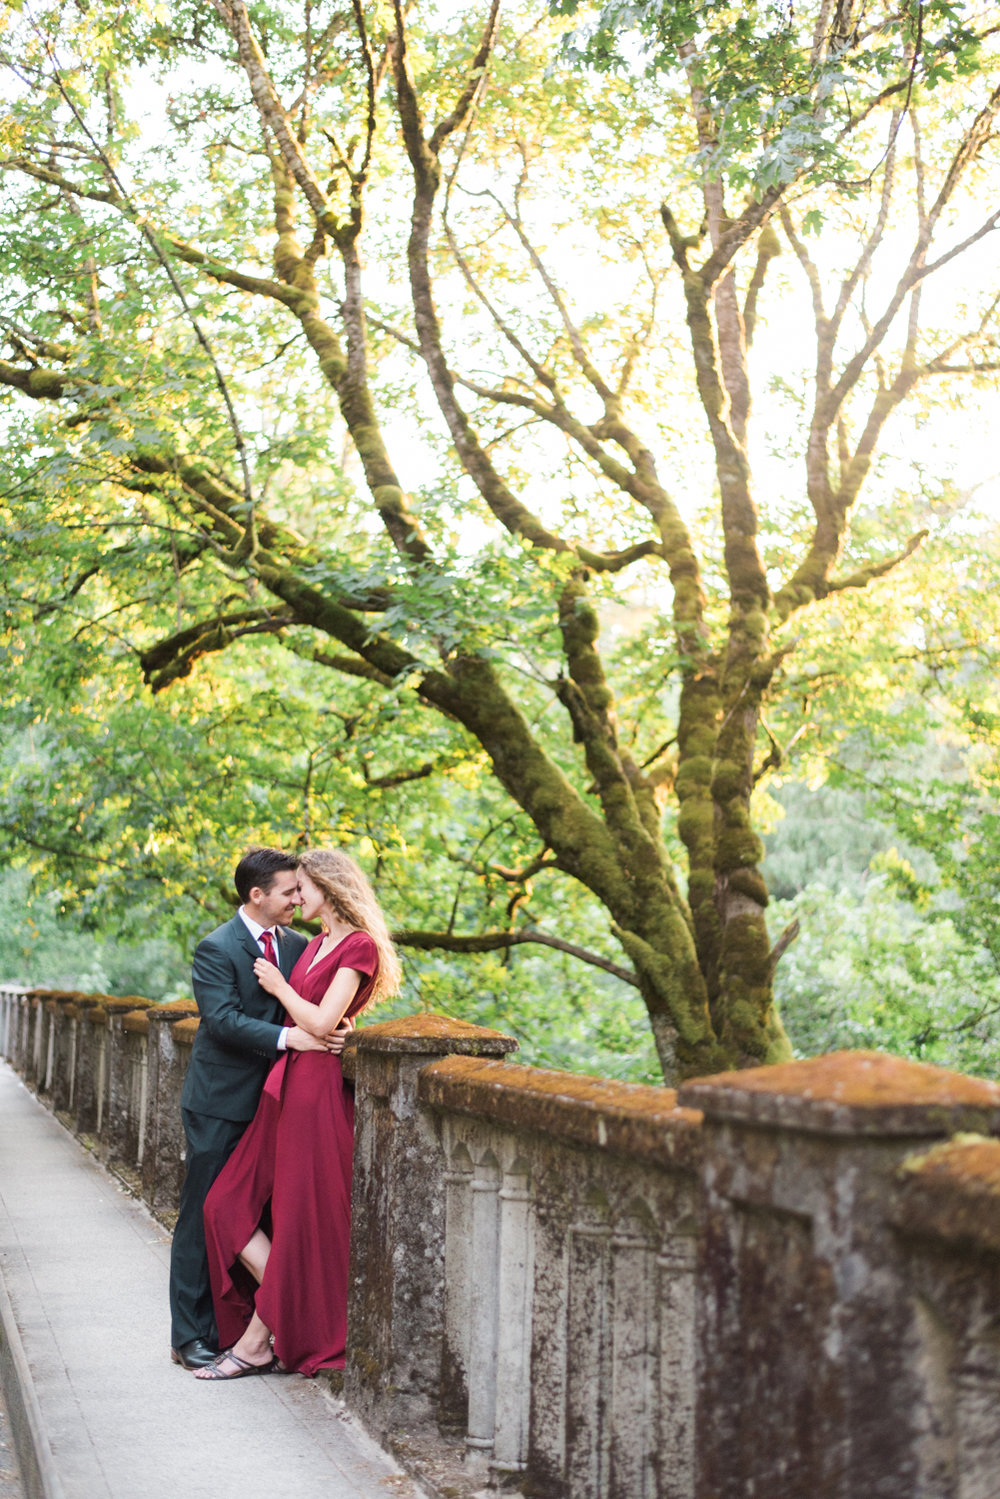 latourel-waterfall-engagement-photos-columbia-river-gorge-portland-oregon-260.jpg